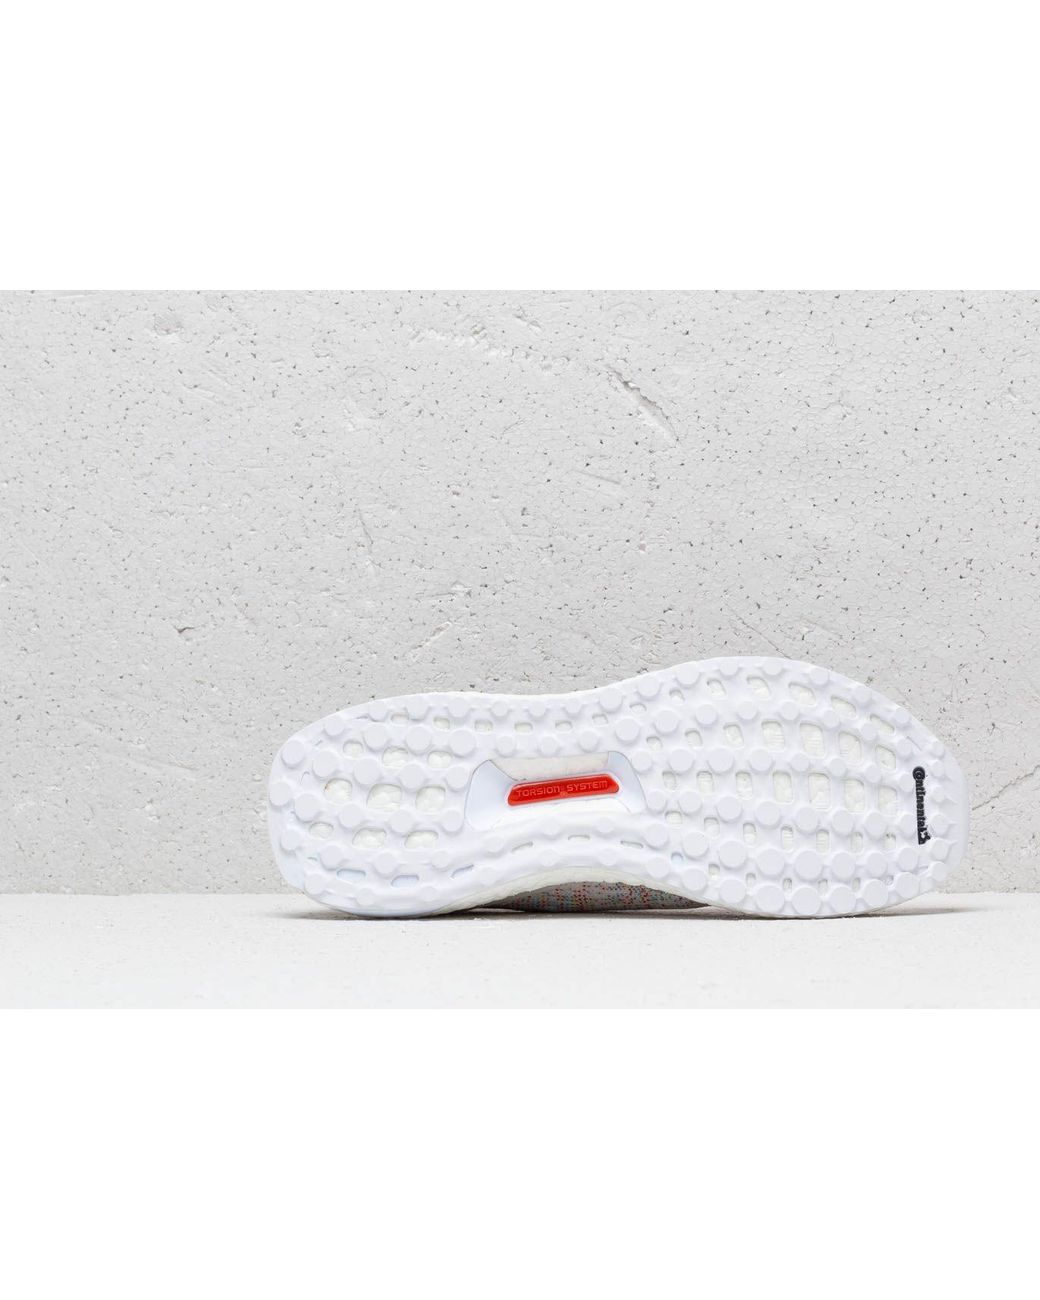 separation shoes 756ae 64abb adidas Originals Adidas Ultraboost Uncaged Raw White  Ftw White  Shocya in  White for Men - Lyst